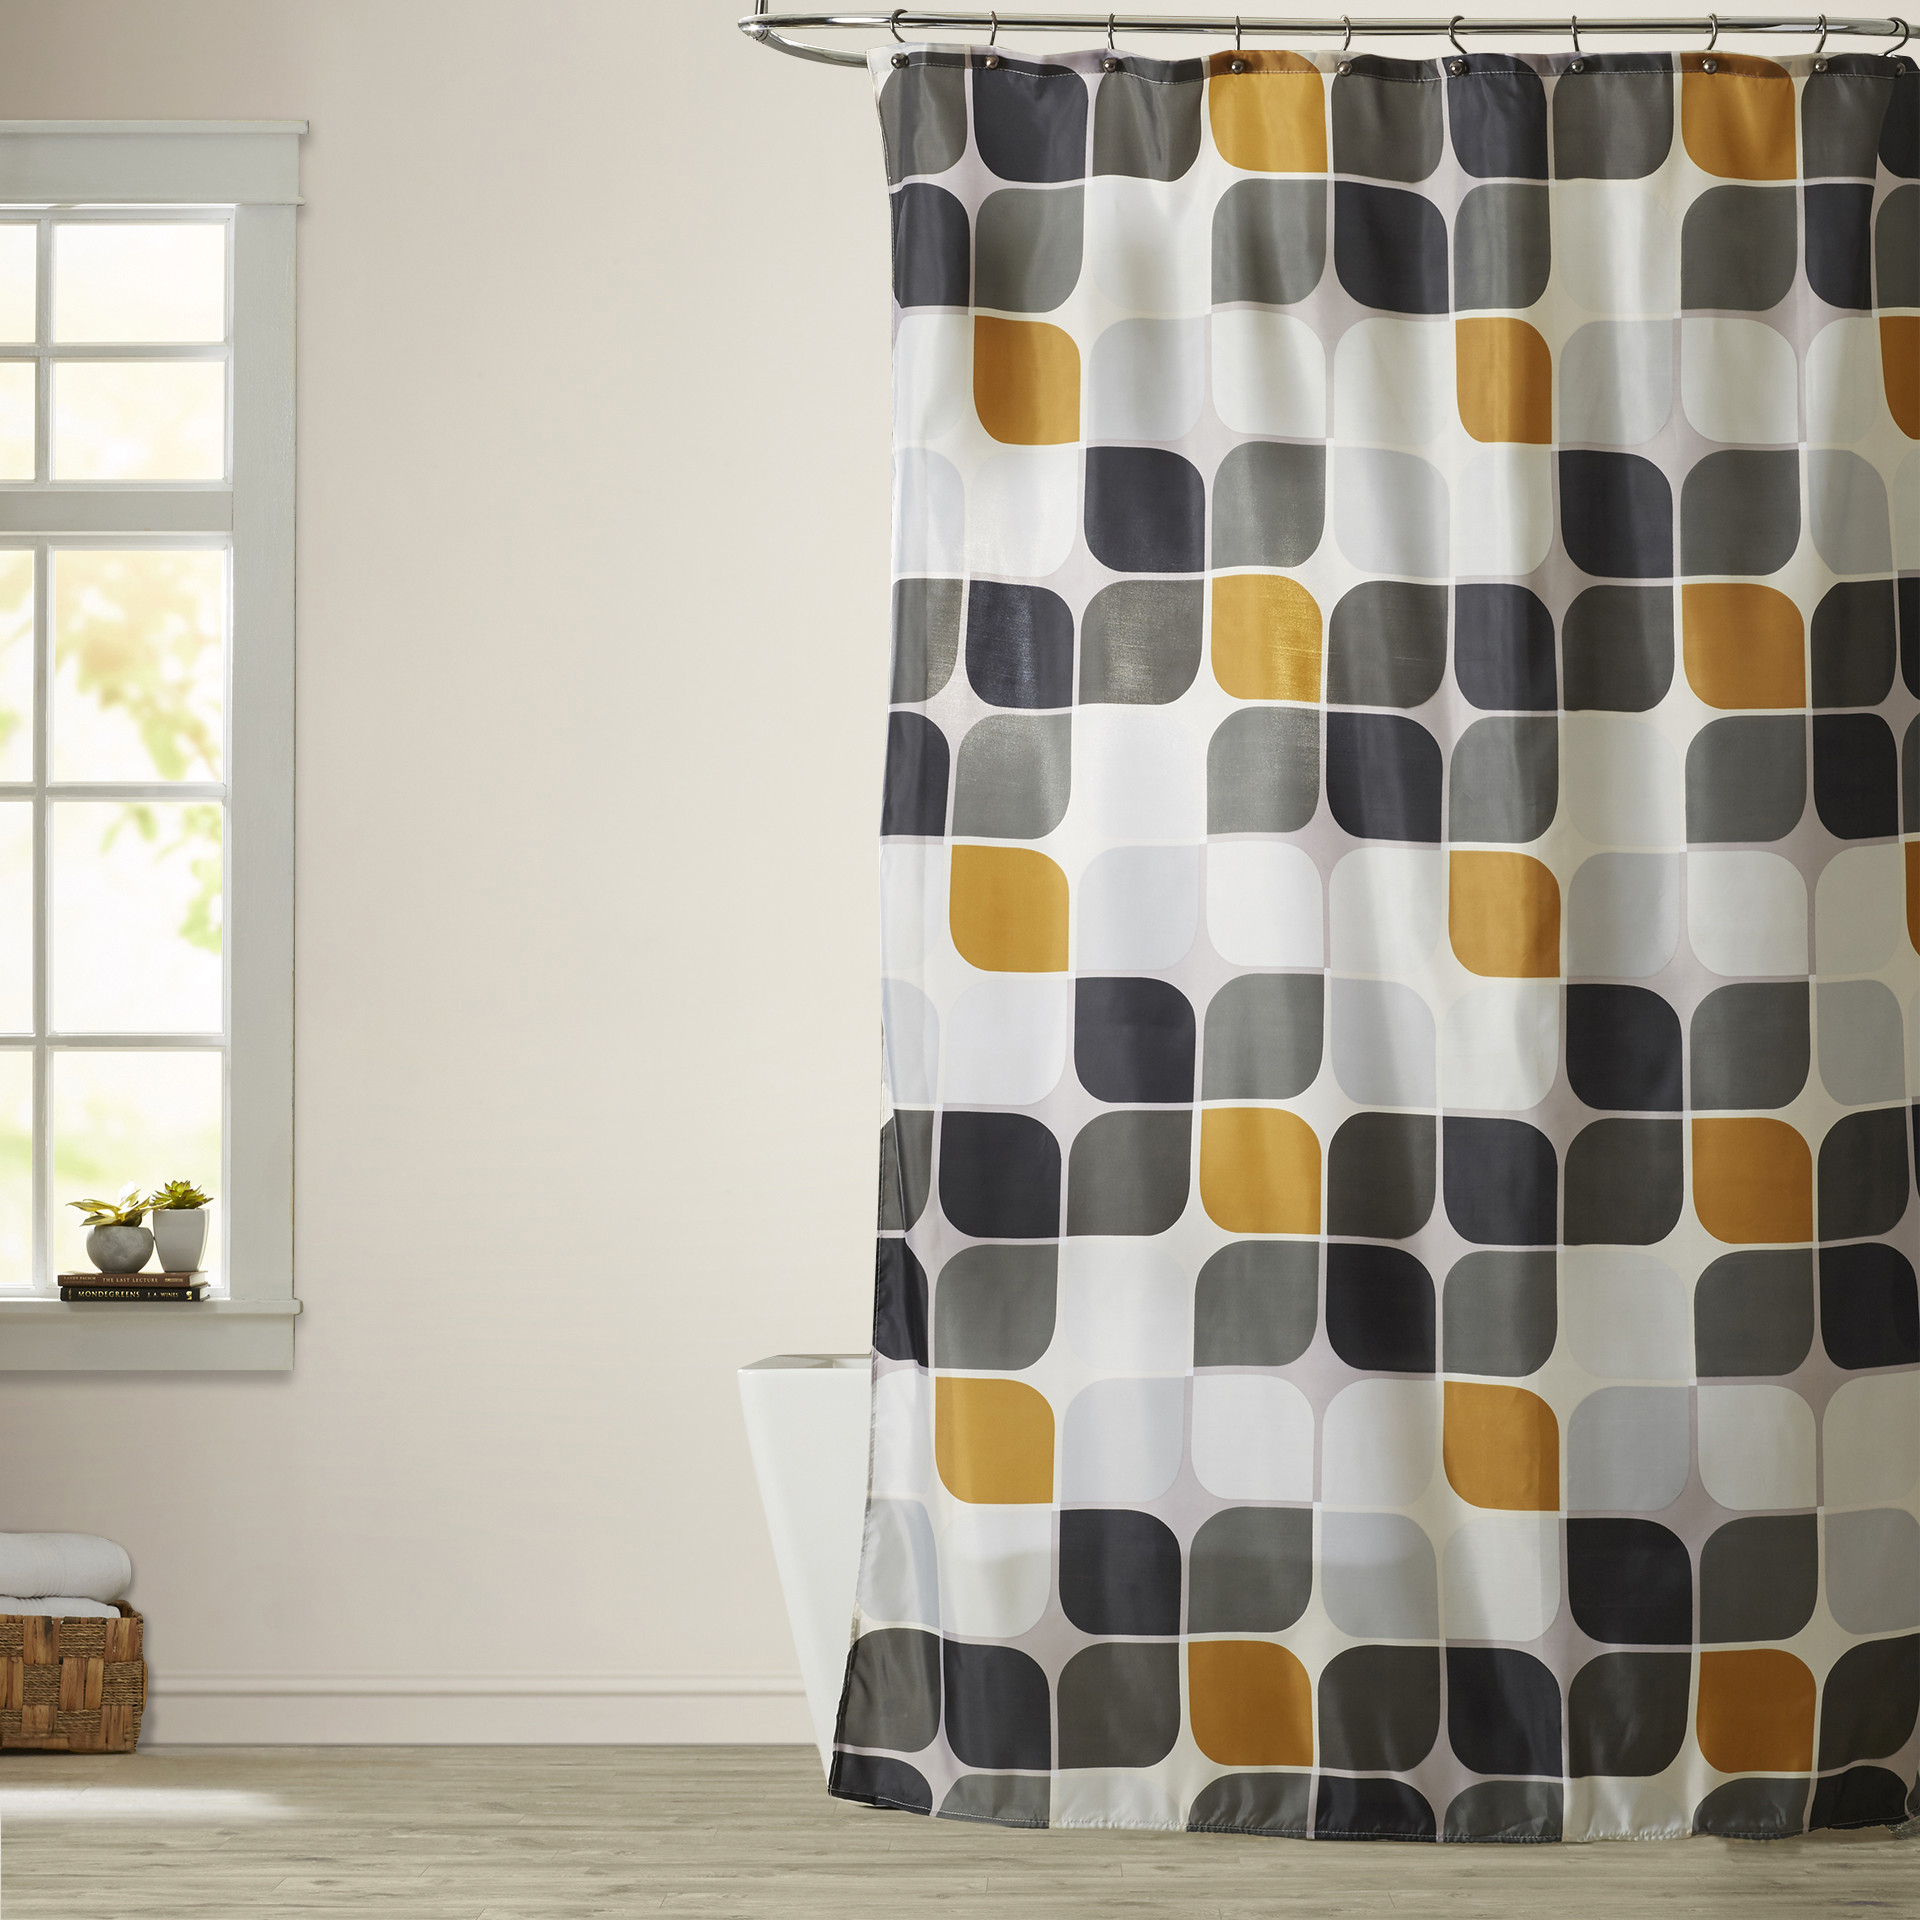 Brilliant Ideas Oversized Shower Curtains Peaceful Best Selling for dimensions 1920 X 1920